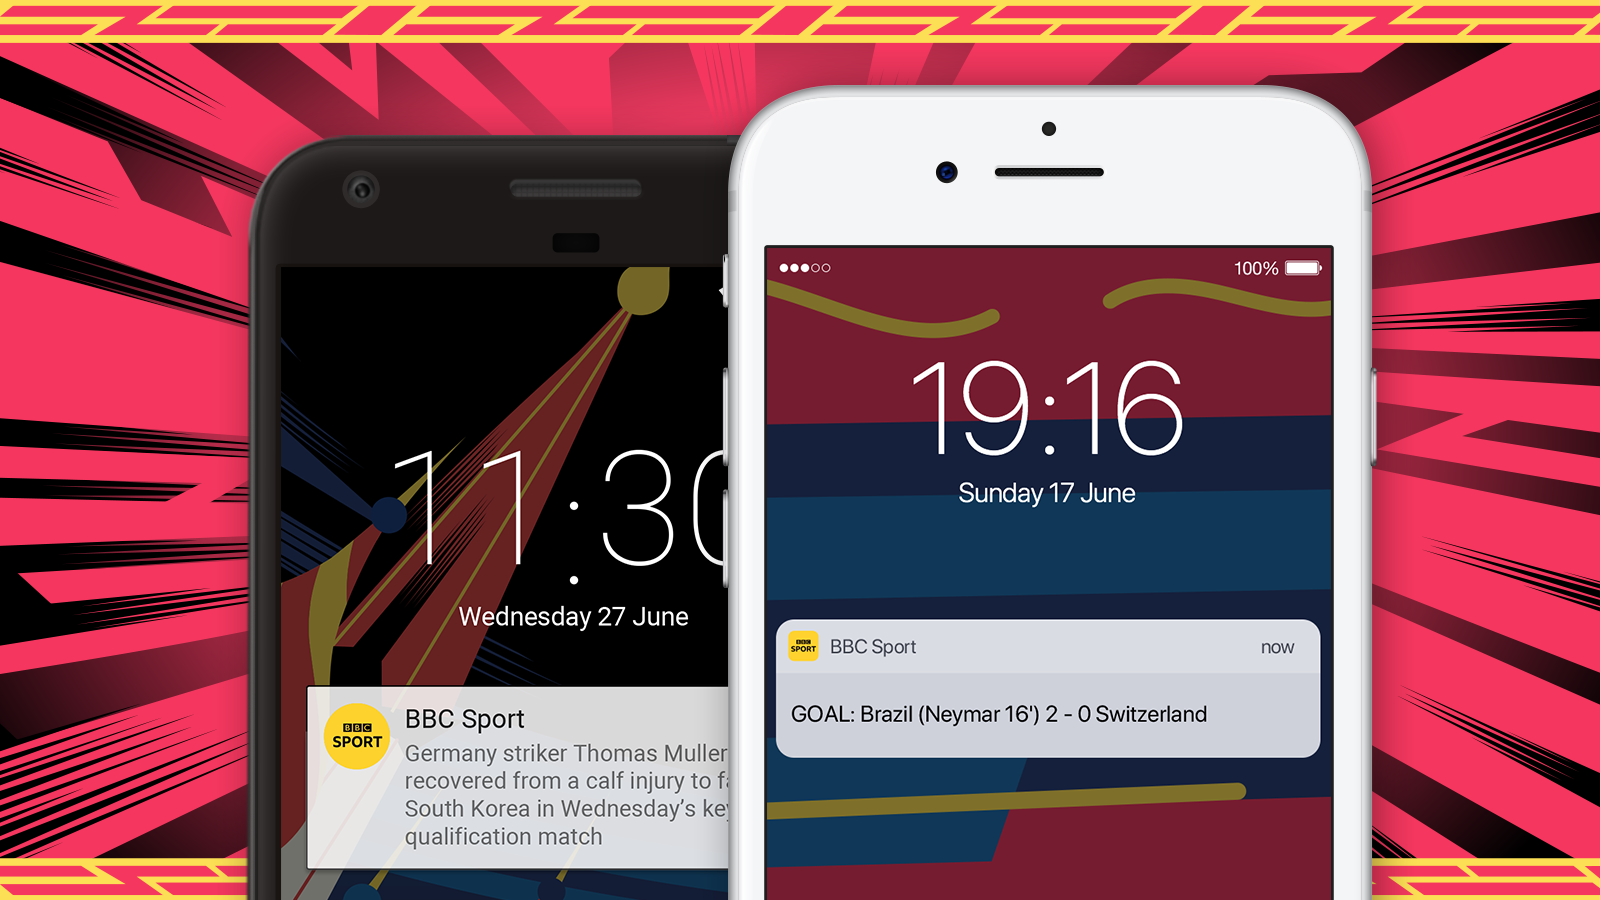 Personalise your BBC Sport app and sign up for notifications